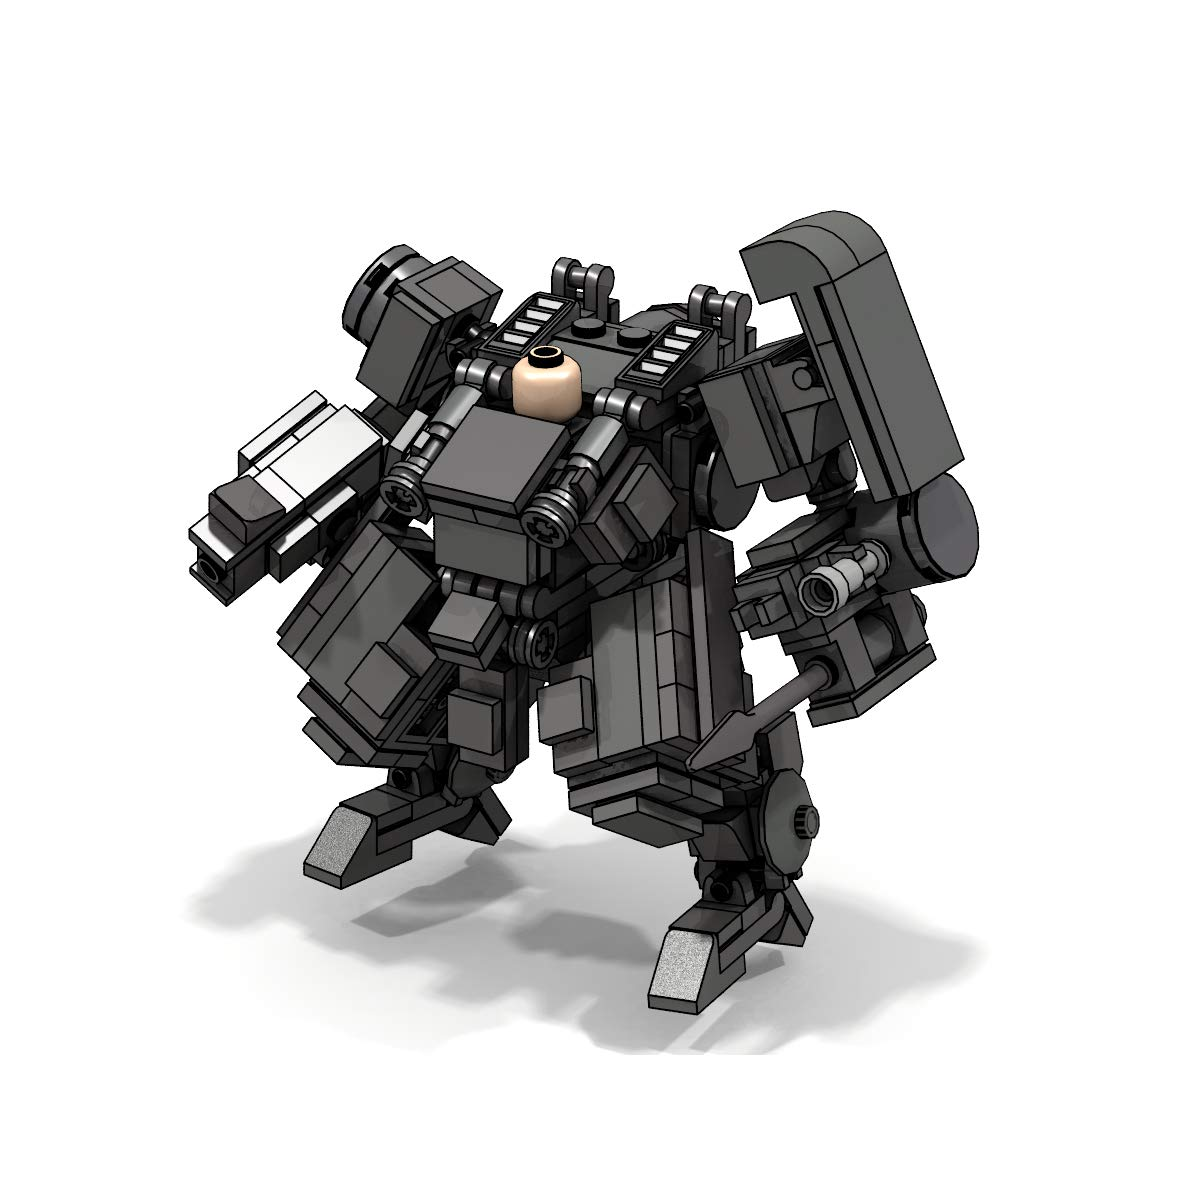 LetMay Original Series,WolfwereMan Building Blocks MOC 423 Parts Compatible with Lego Set